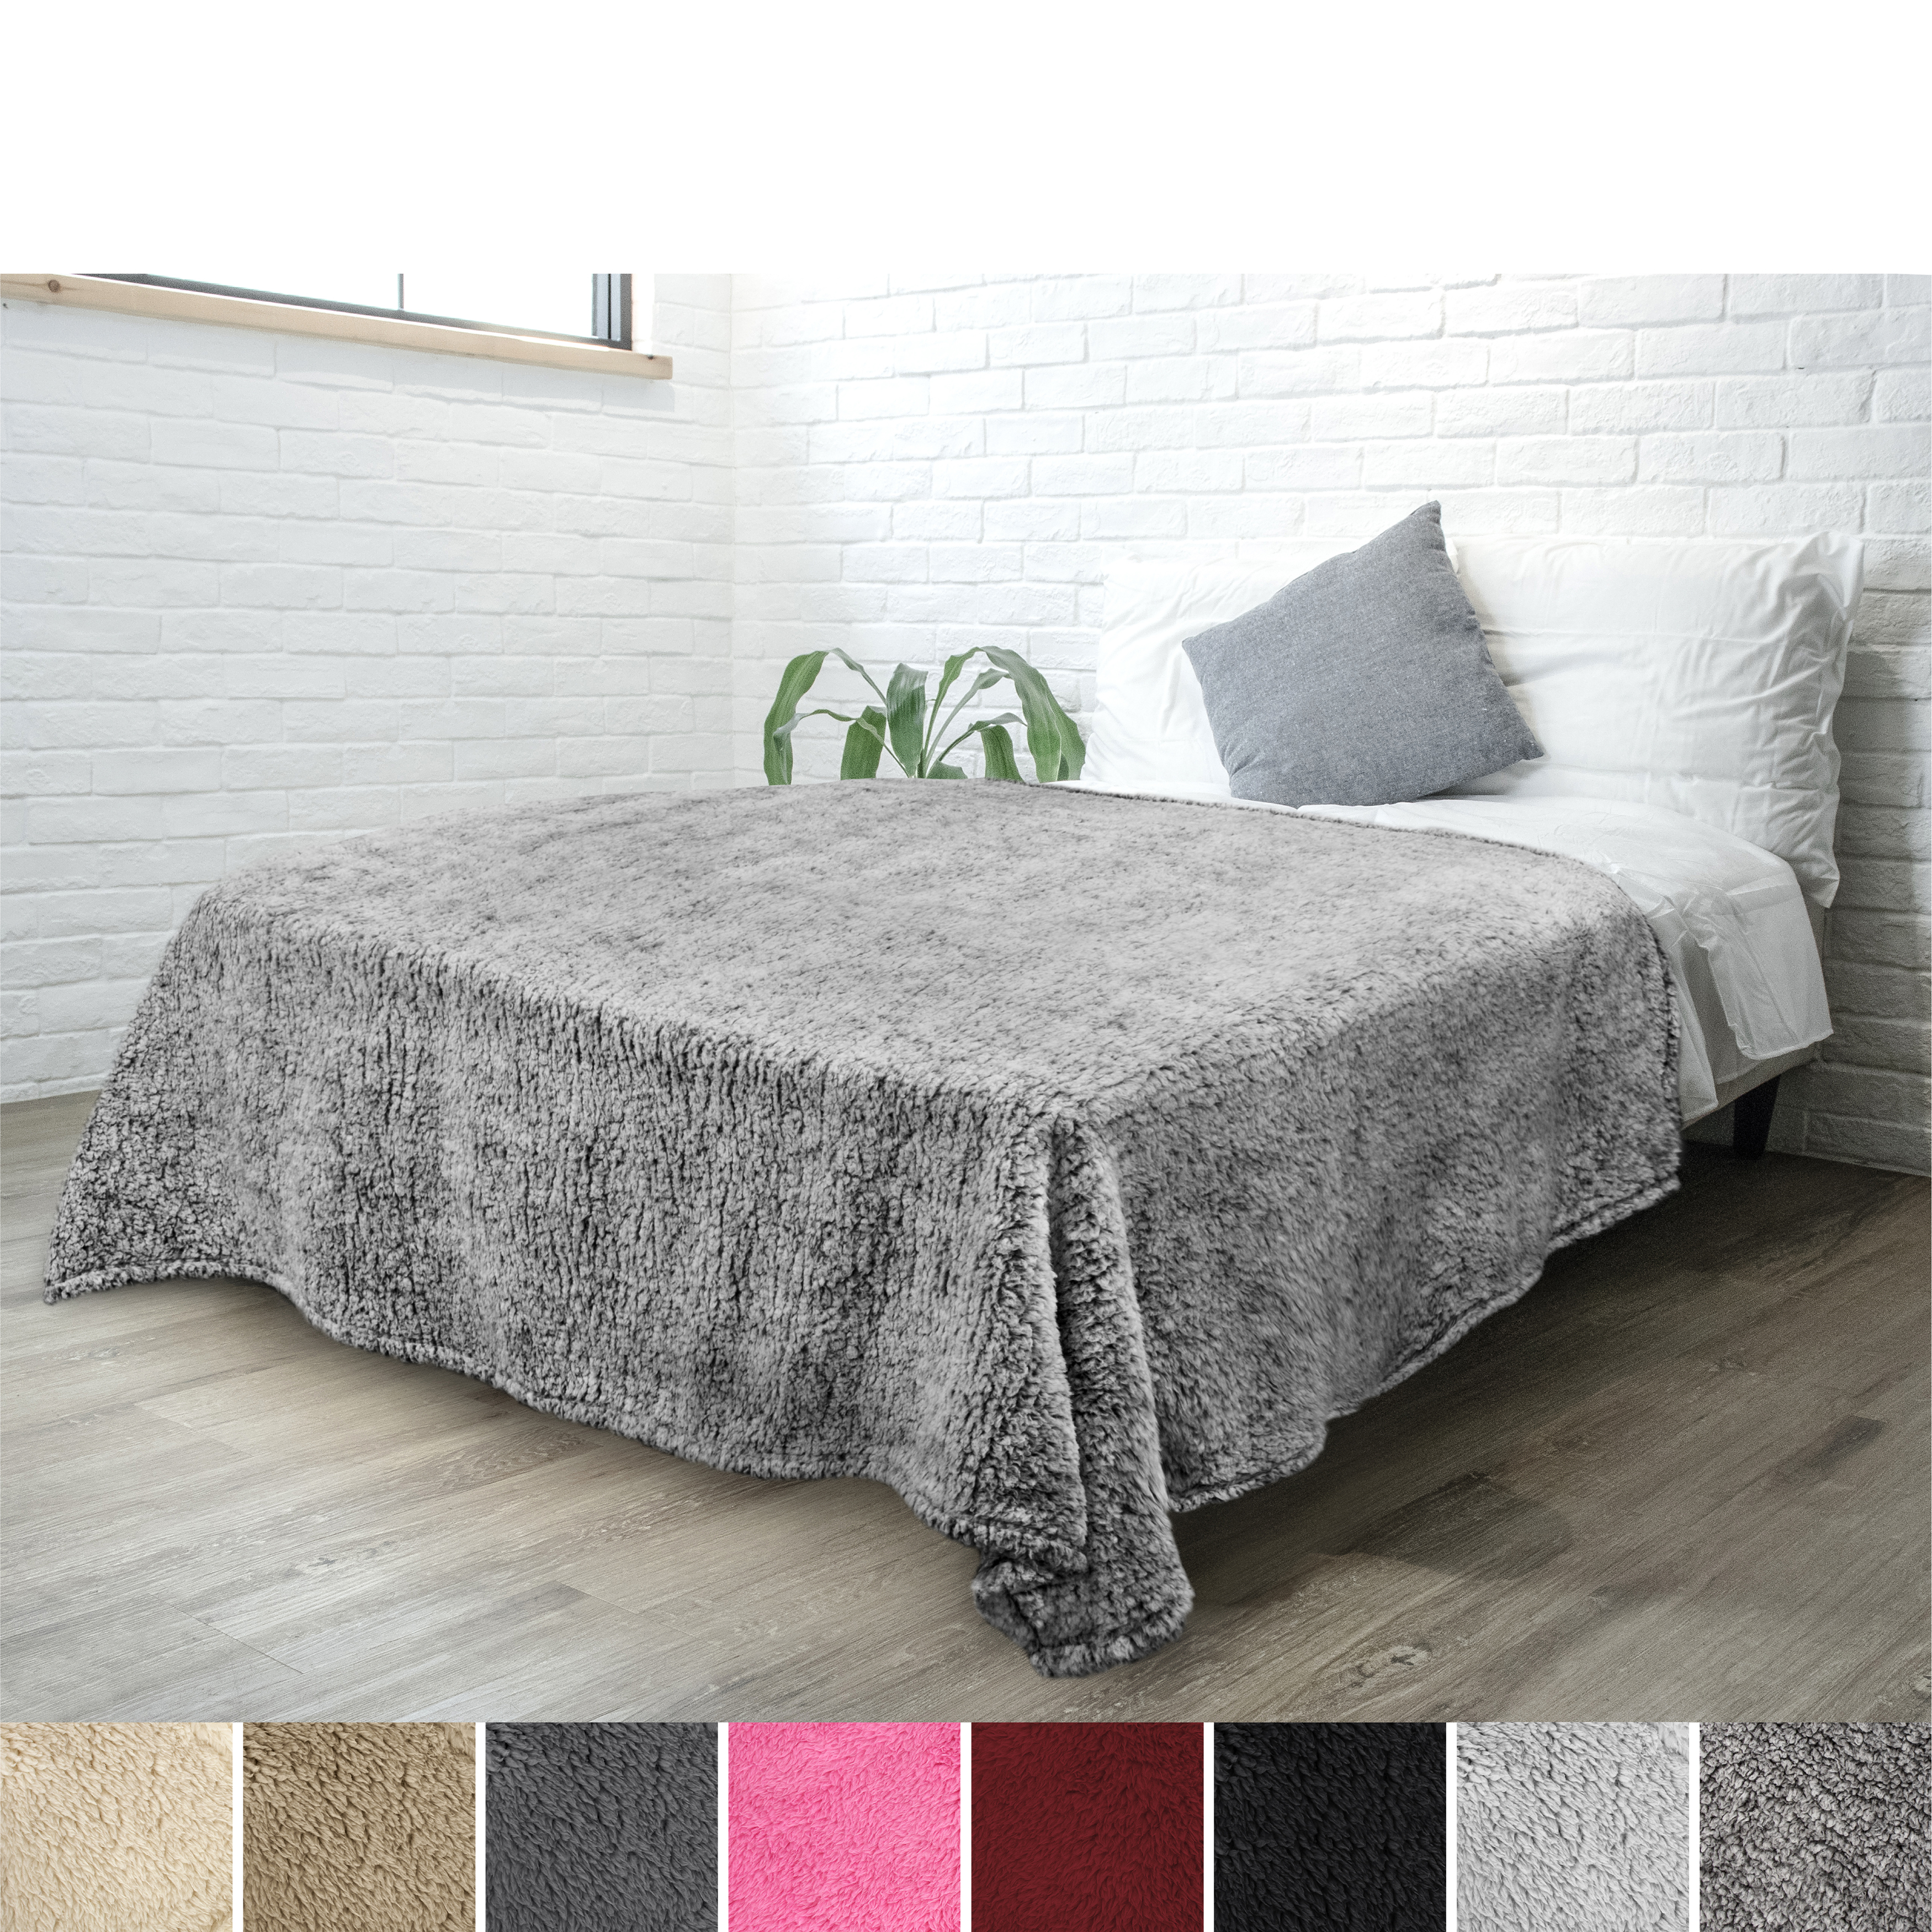 Soft-Fuzzy-Warm-Cozy-Throw-Blanket-with-Fluffy-Sherpa-Fleece-for-Sofa-Couch-Bed thumbnail 35